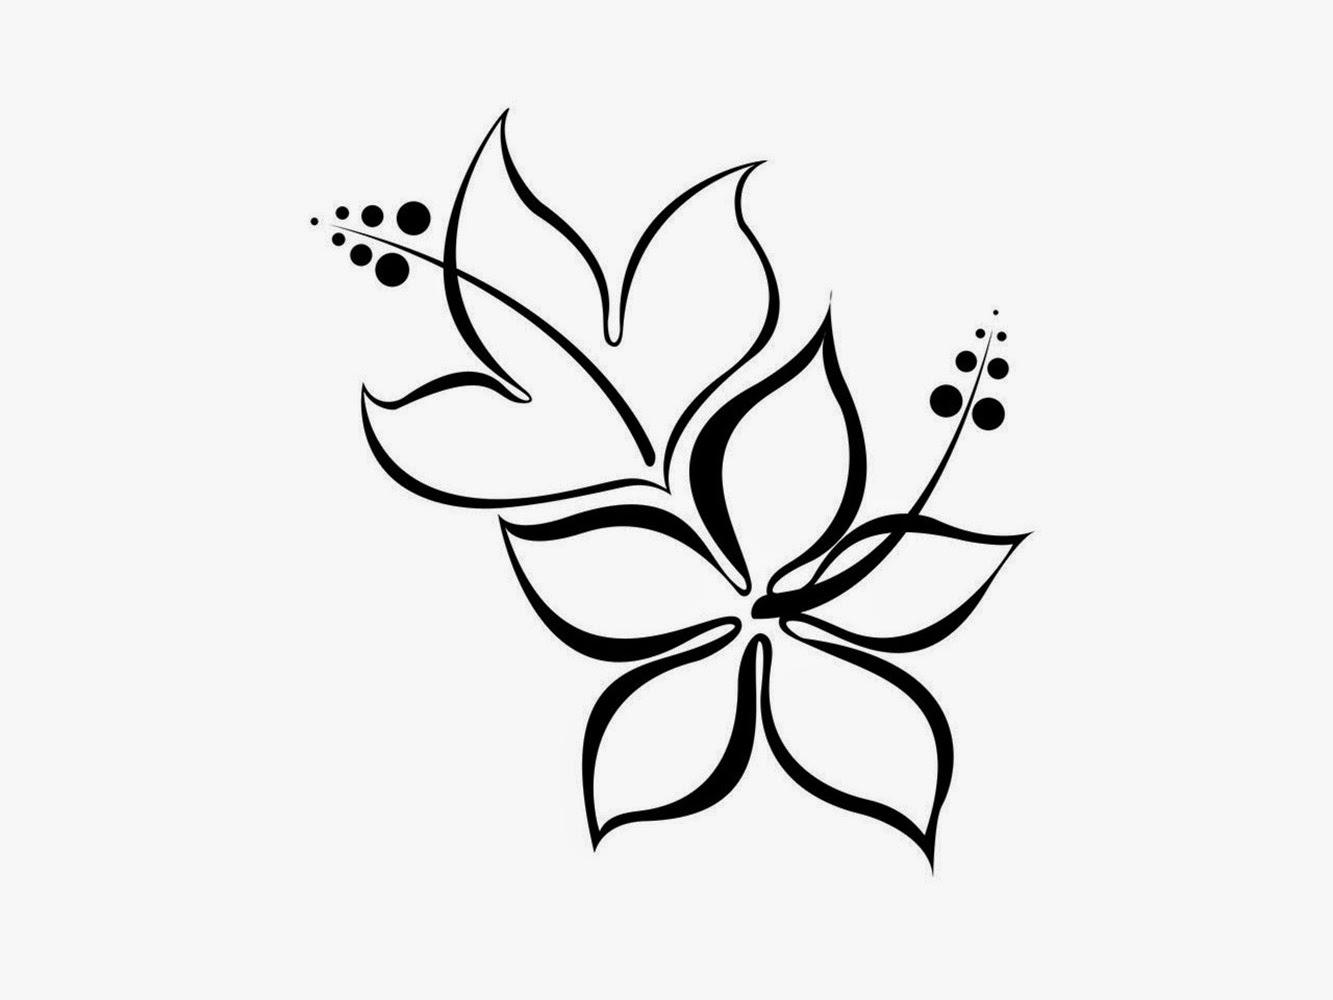 1333x1000 Black And White Flower Design Many Flowers